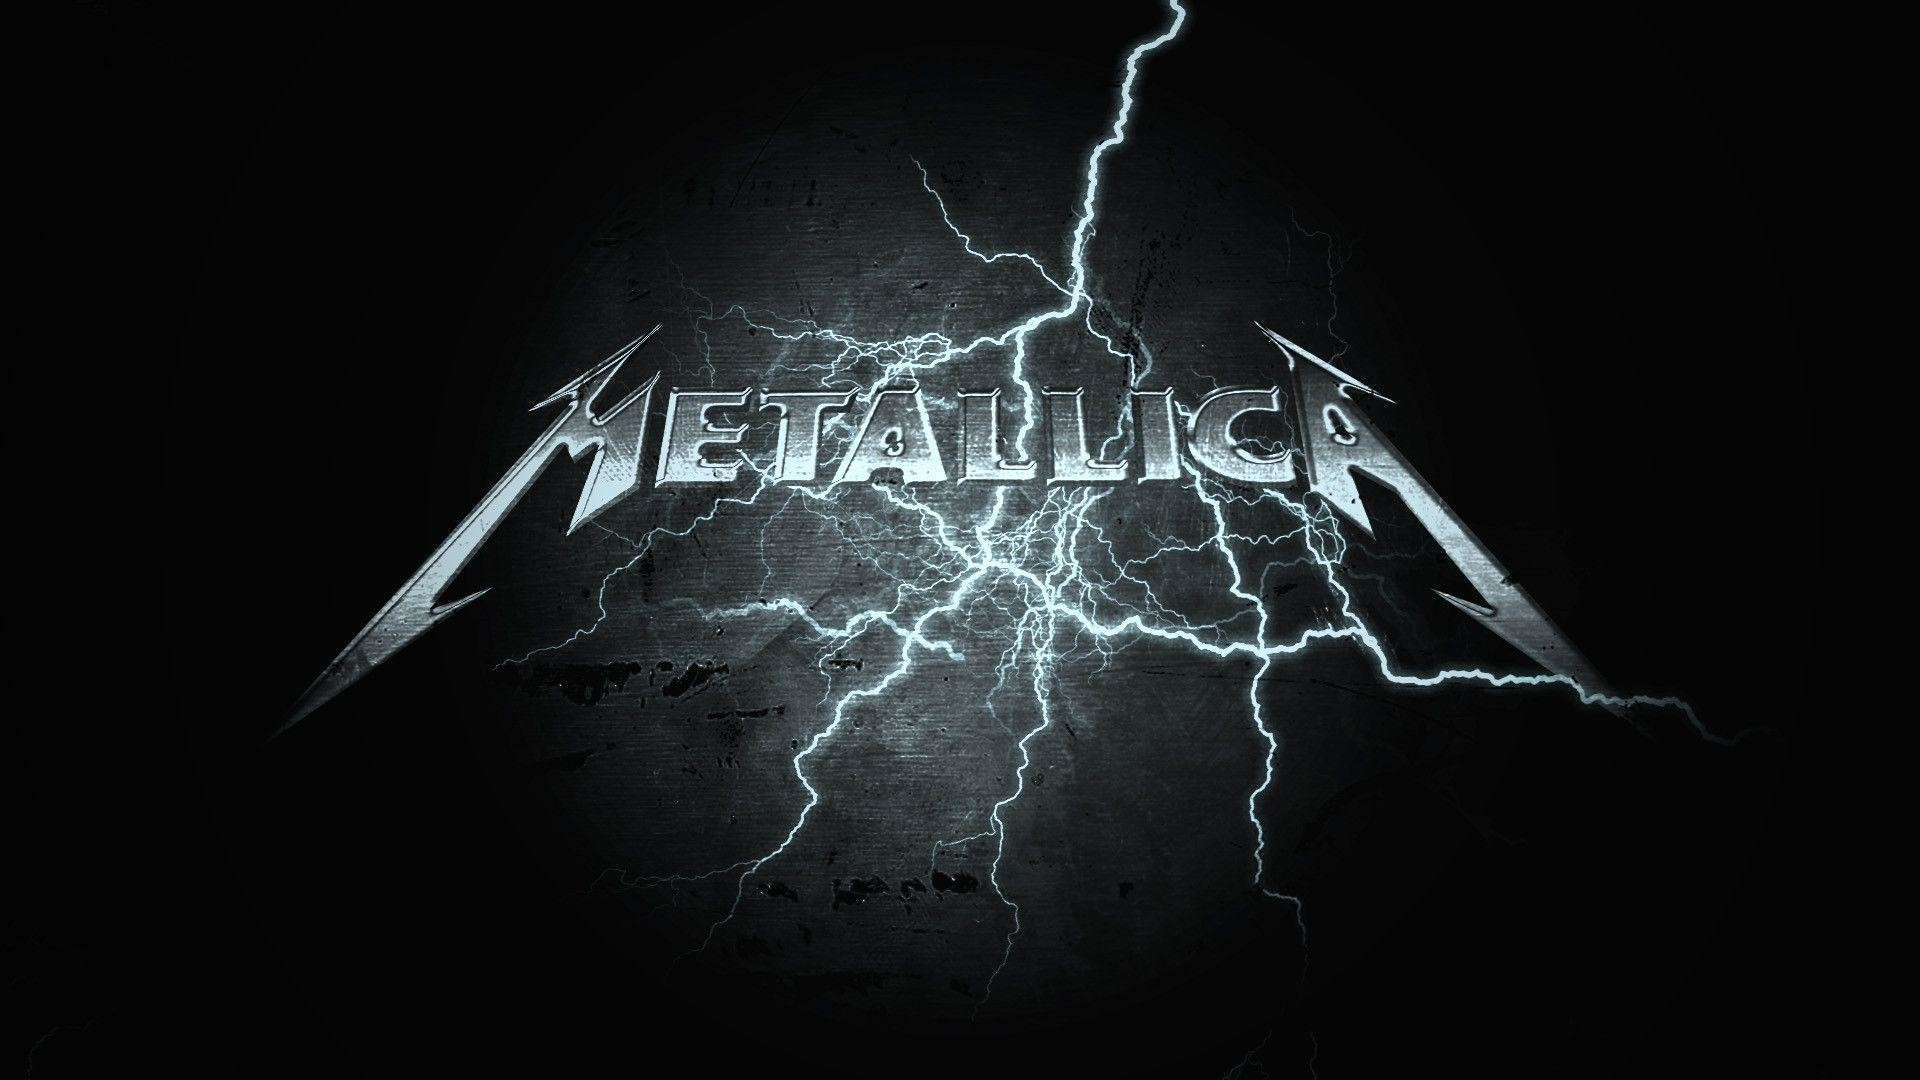 1920x1080 Metallica- Ride The Lightning by BEAMER3K on DeviantArt